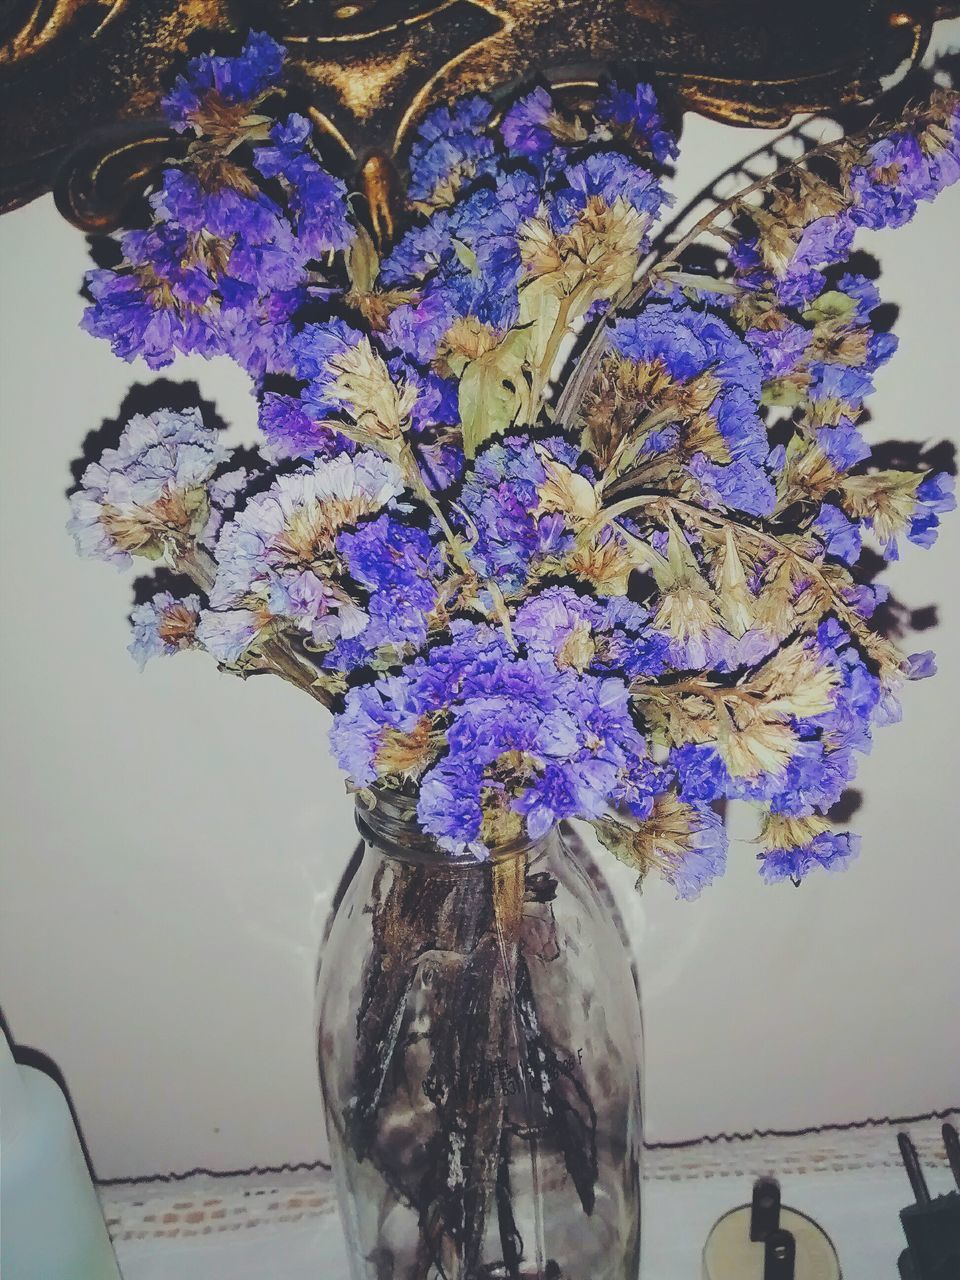 flower, purple, indoors, beauty in nature, vase, hanging, nature, petal, fragility, no people, growth, freshness, close-up, day, flower head